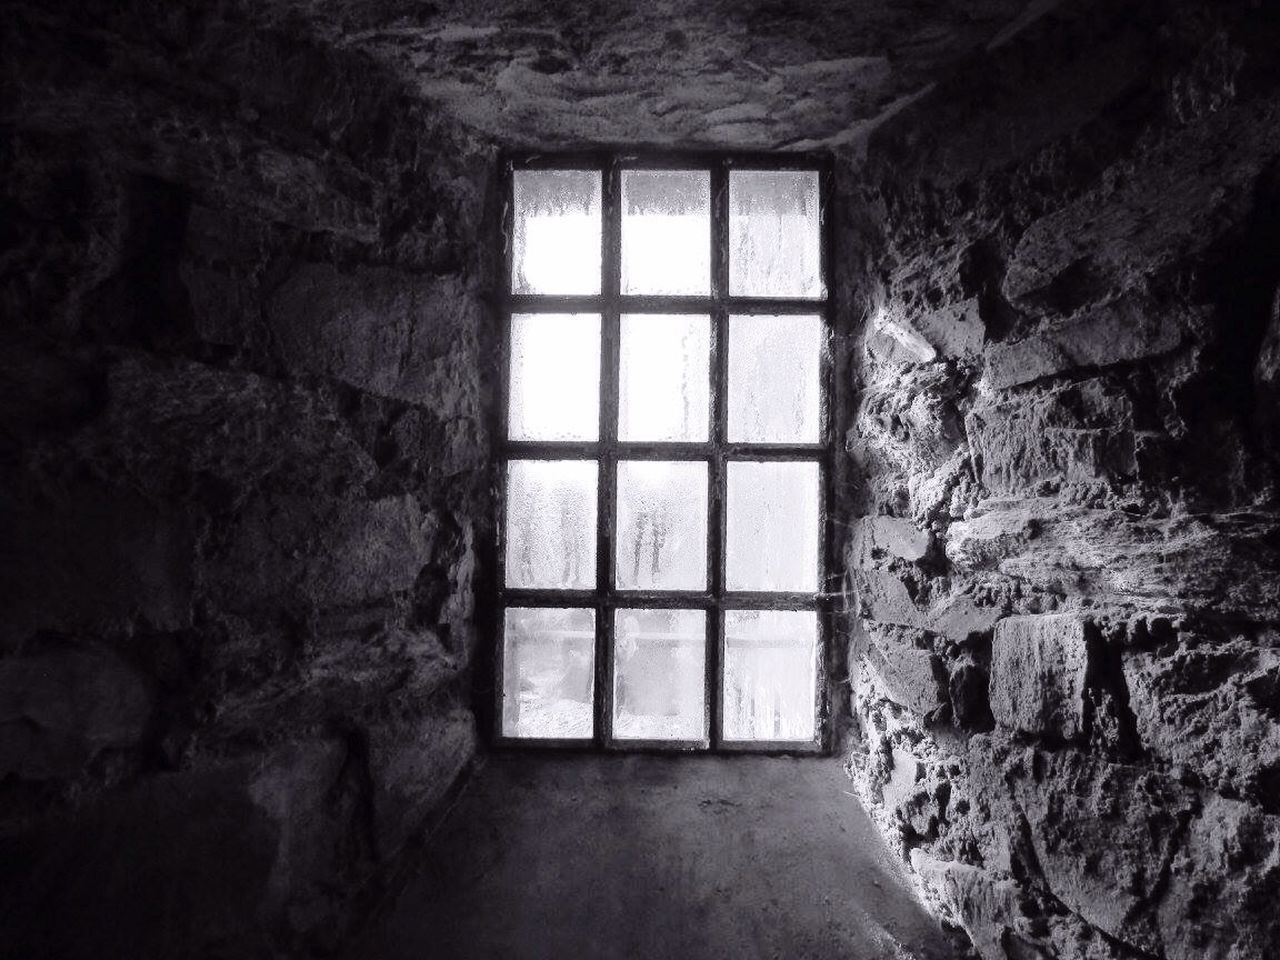 window, indoors, architecture, door, built structure, day, abandoned, no people, daylight, prison